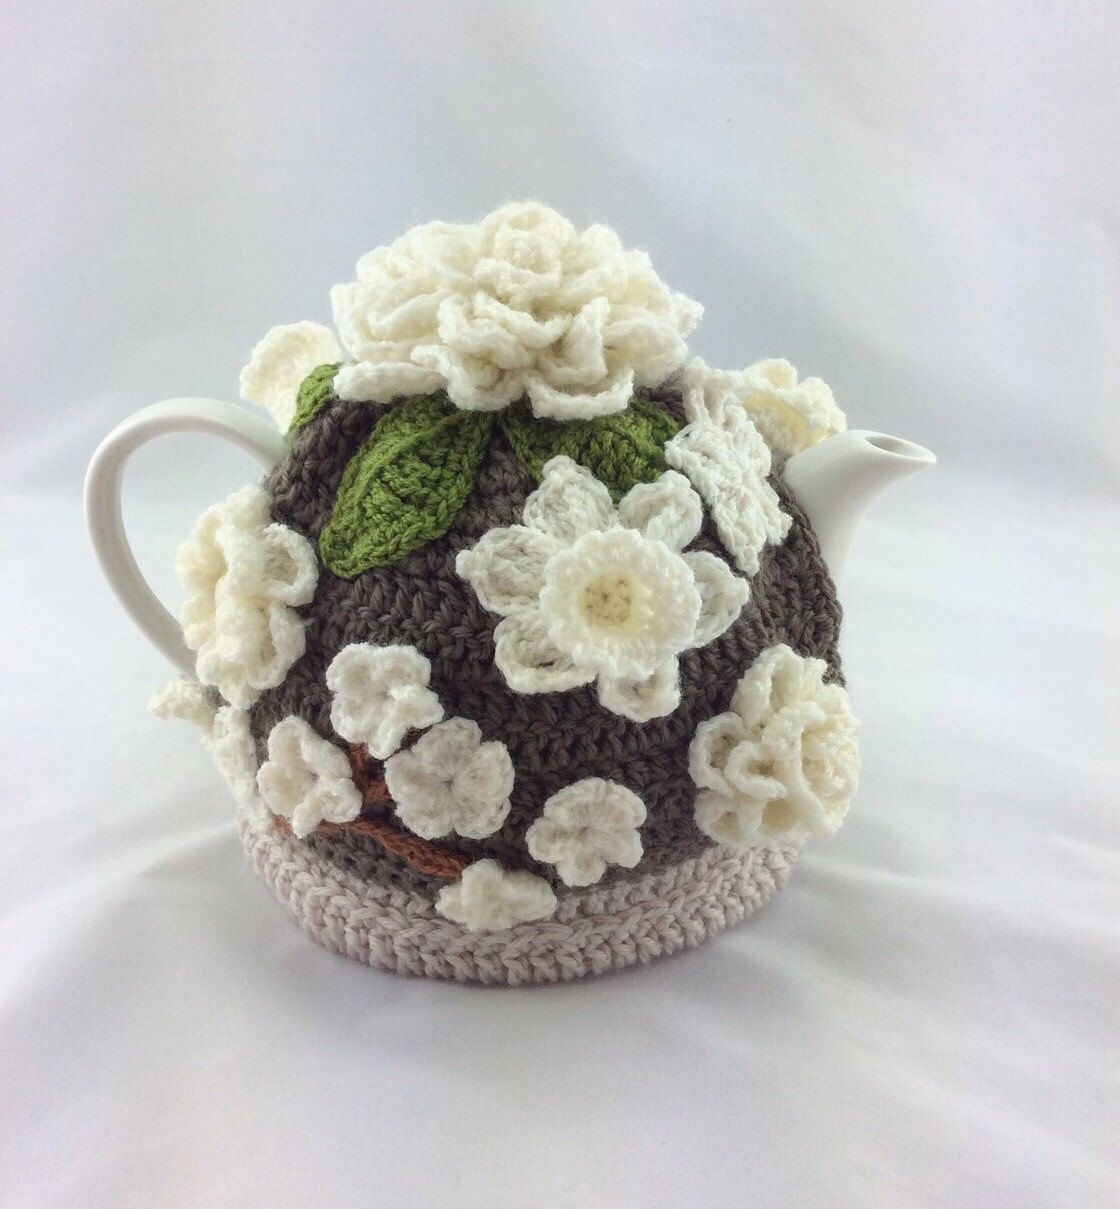 Pin by linda on pats pinterest tea cozy teas and tea cosies a beautiful crochet tea cosy decorated with a lovely variety of white flowers a wonderful addition to any table or kitchen a lovely gift for that someone izmirmasajfo Image collections